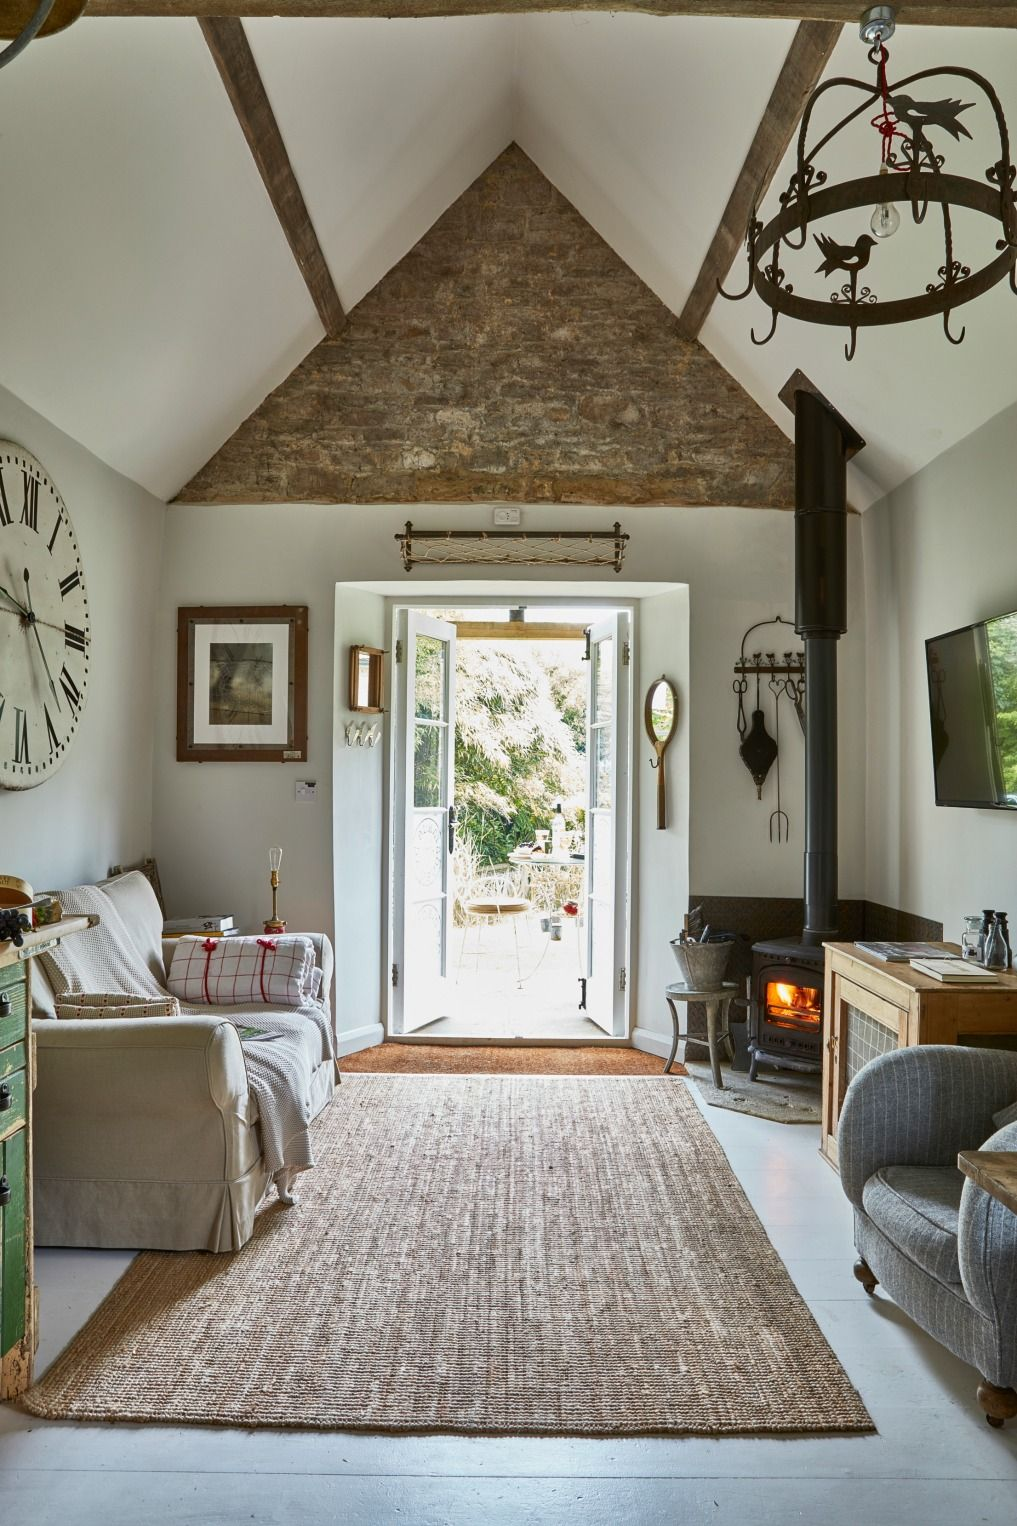 Eclectic Home Tour Filly Island Small Cottage Interiors Tiny Cottage Interior Country Cottage Decor #small #cottage #living #room